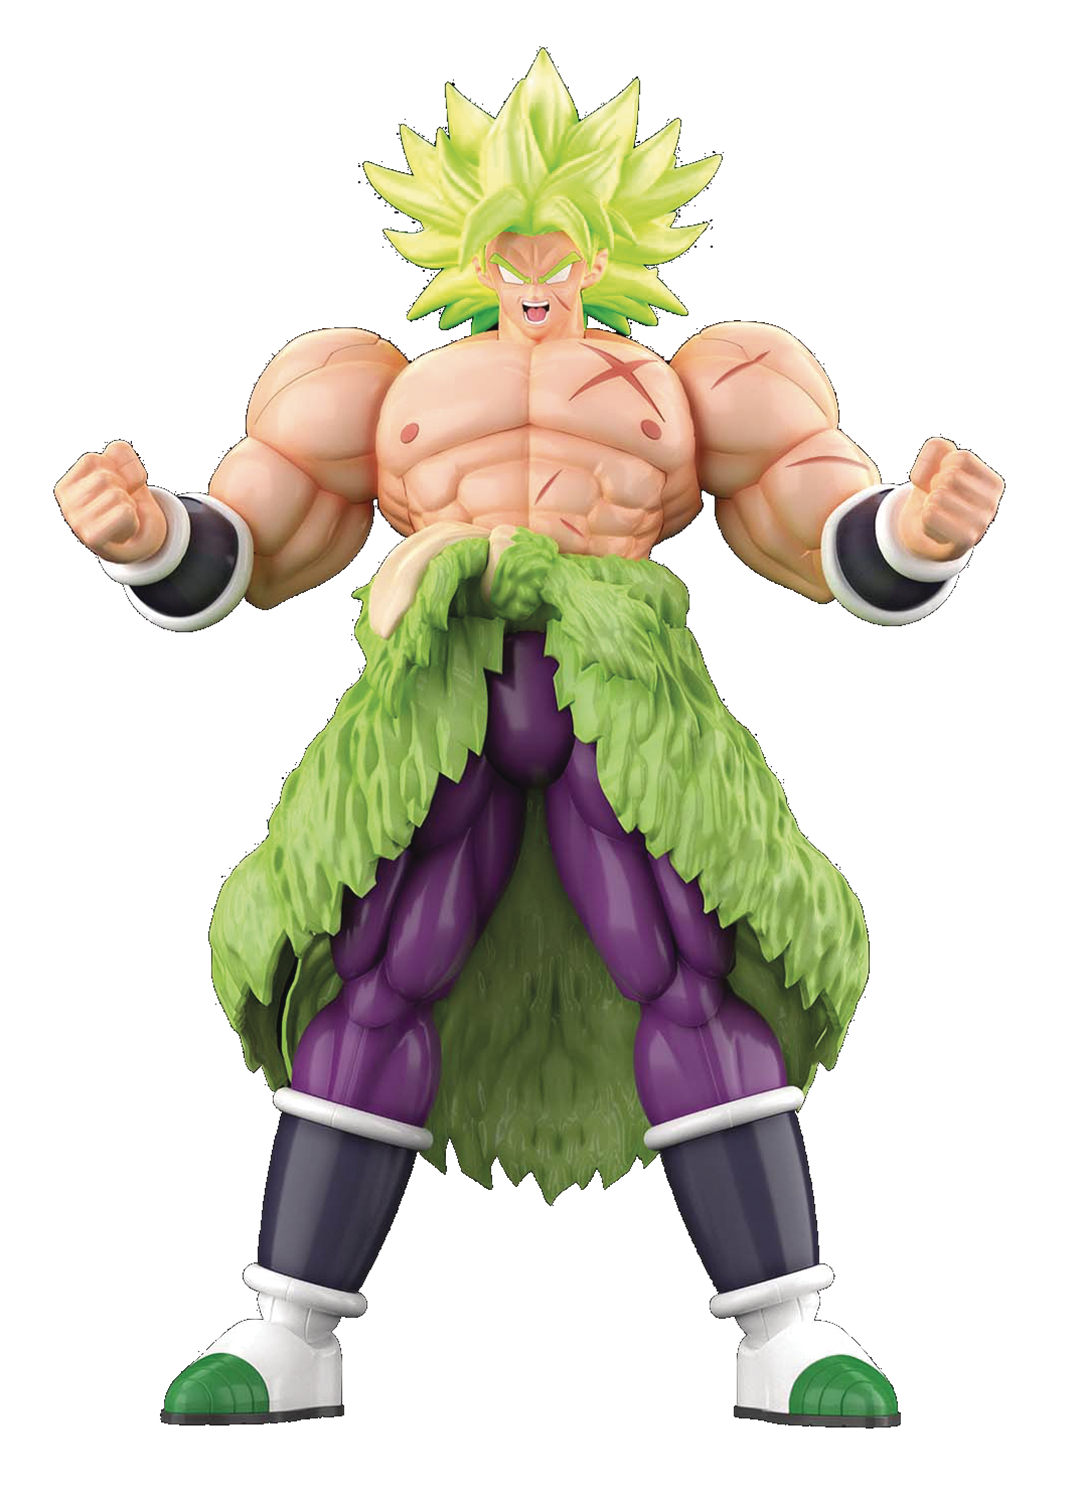 DB SUPER SS BROLY FULL POWER FIGURE-RISE STD MDL KIT  (